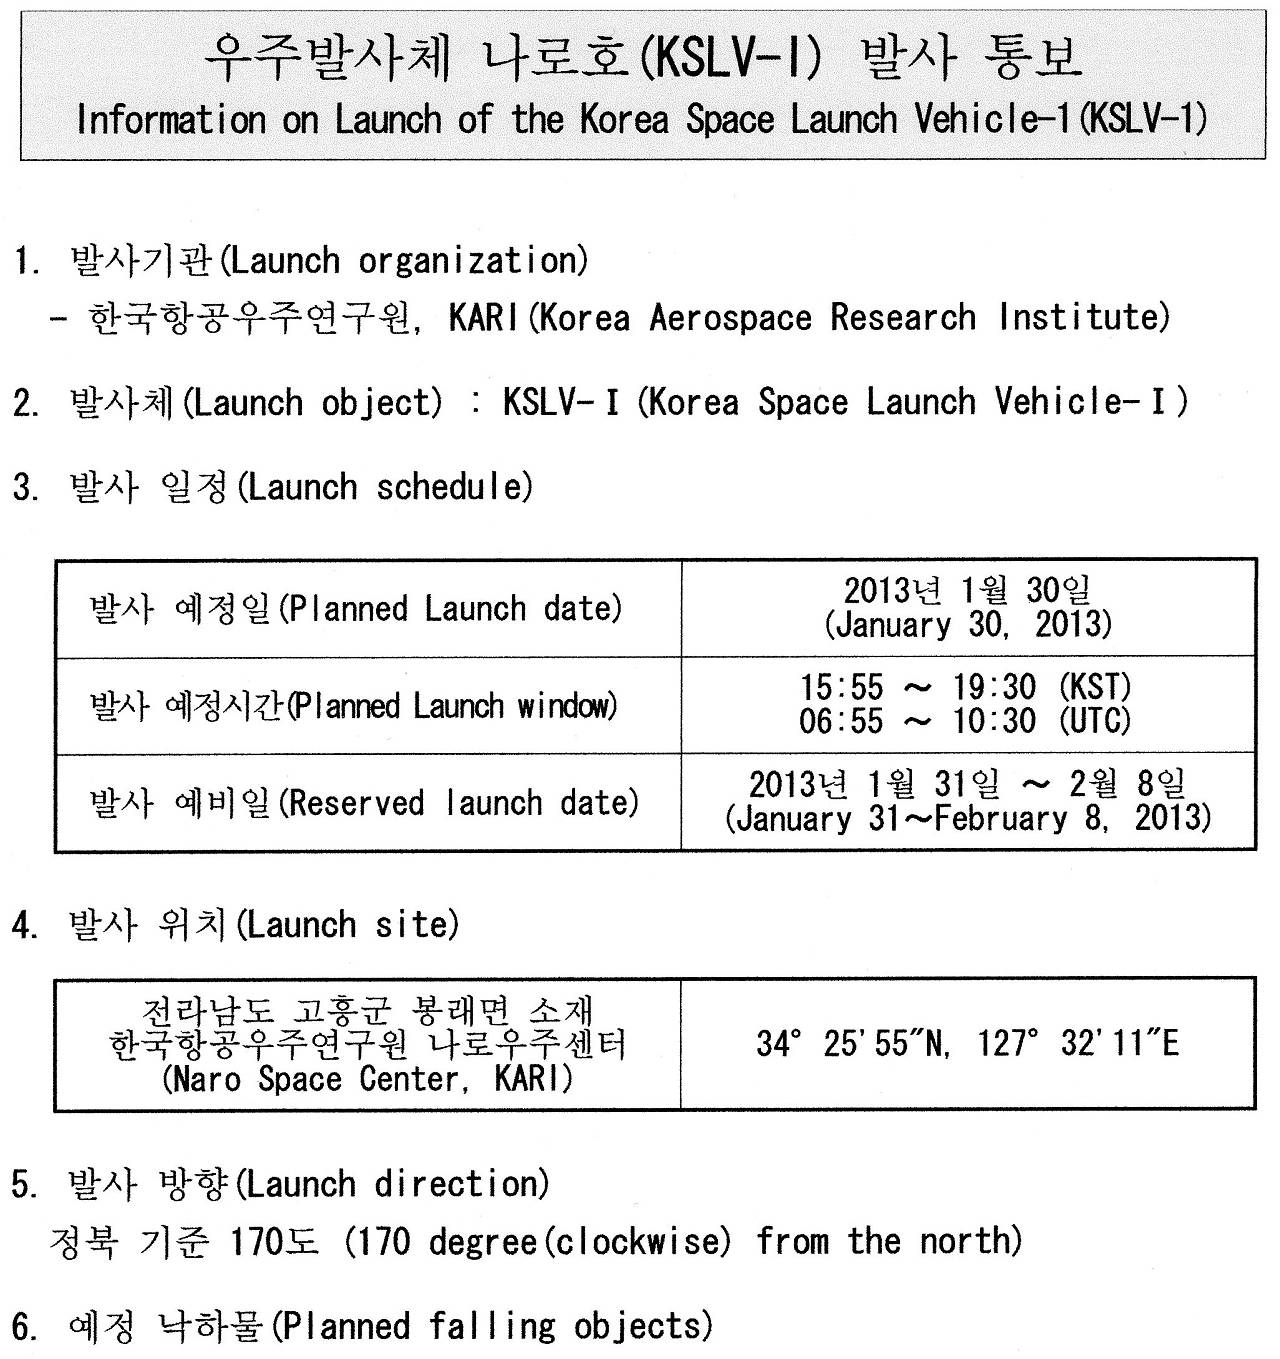 Information_on_launch_of_the_korea_